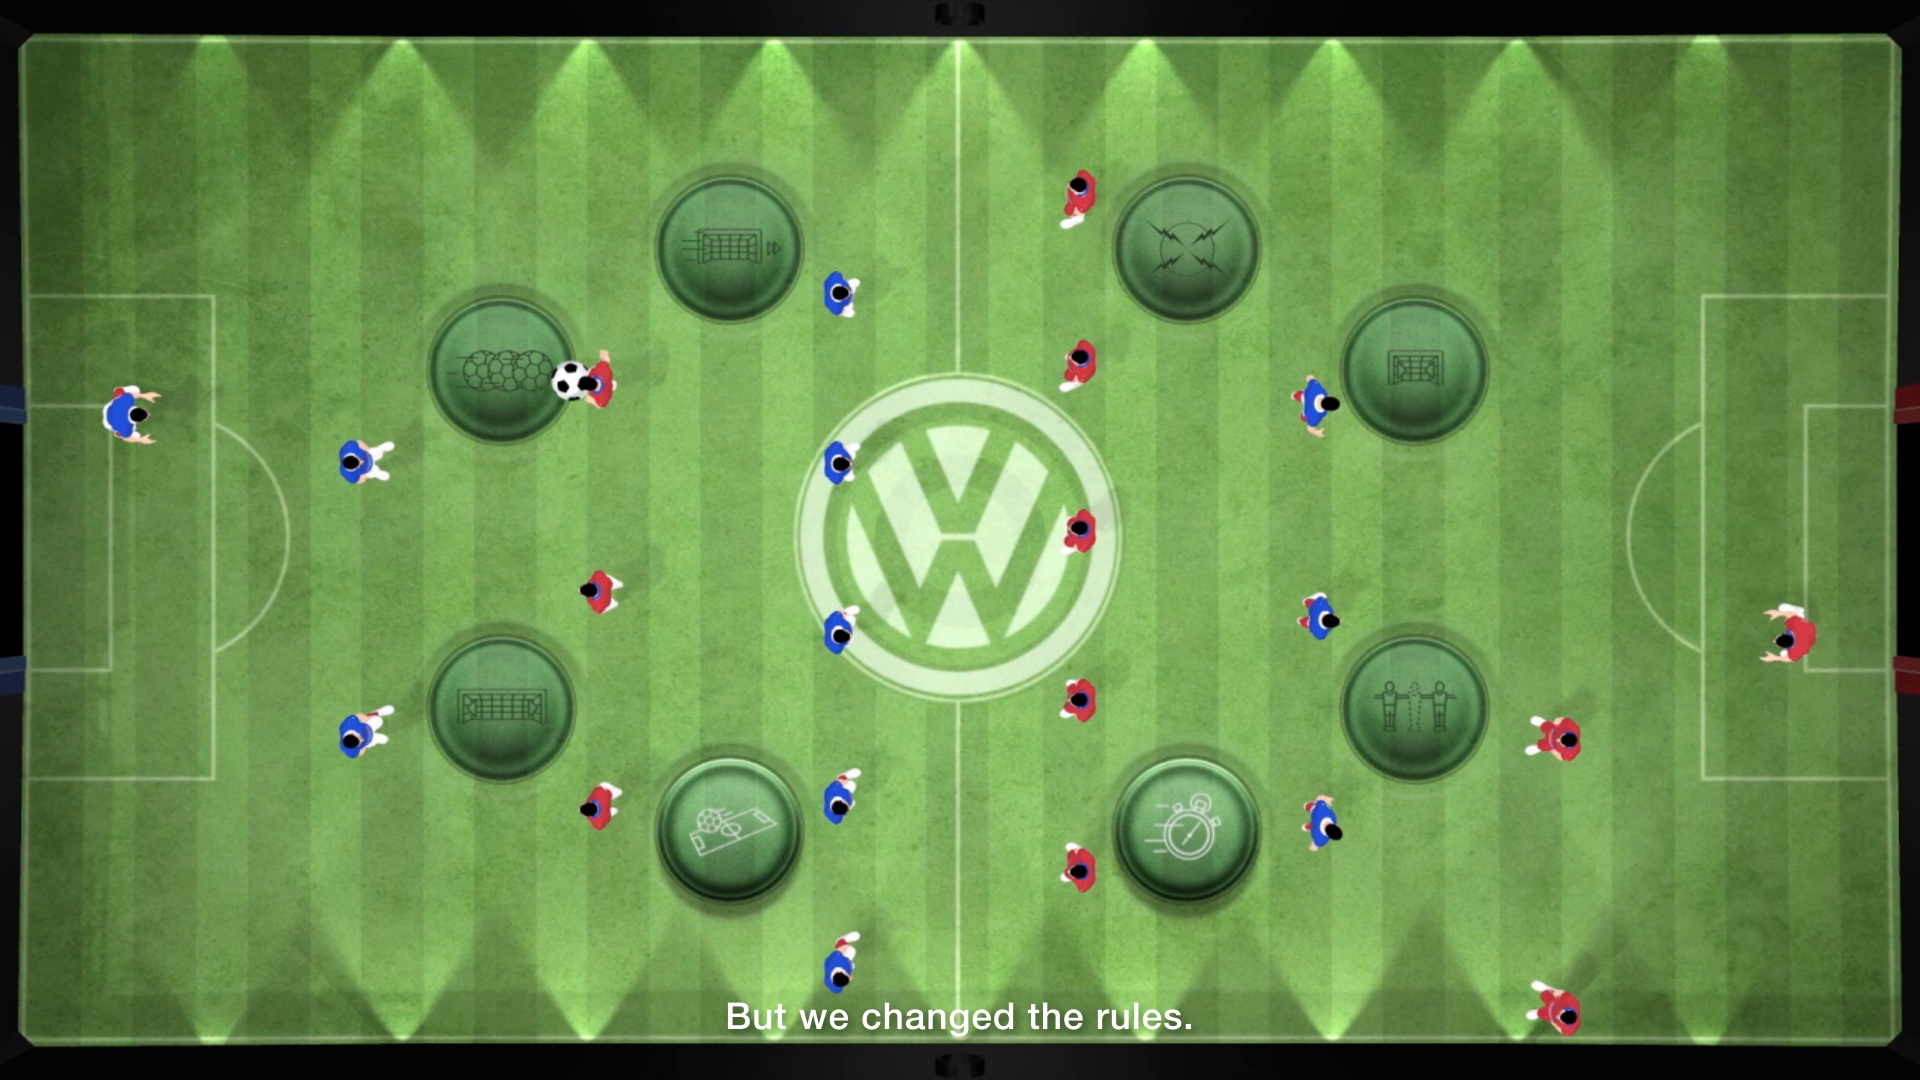 Thumbnail for The Connected Foosball Table